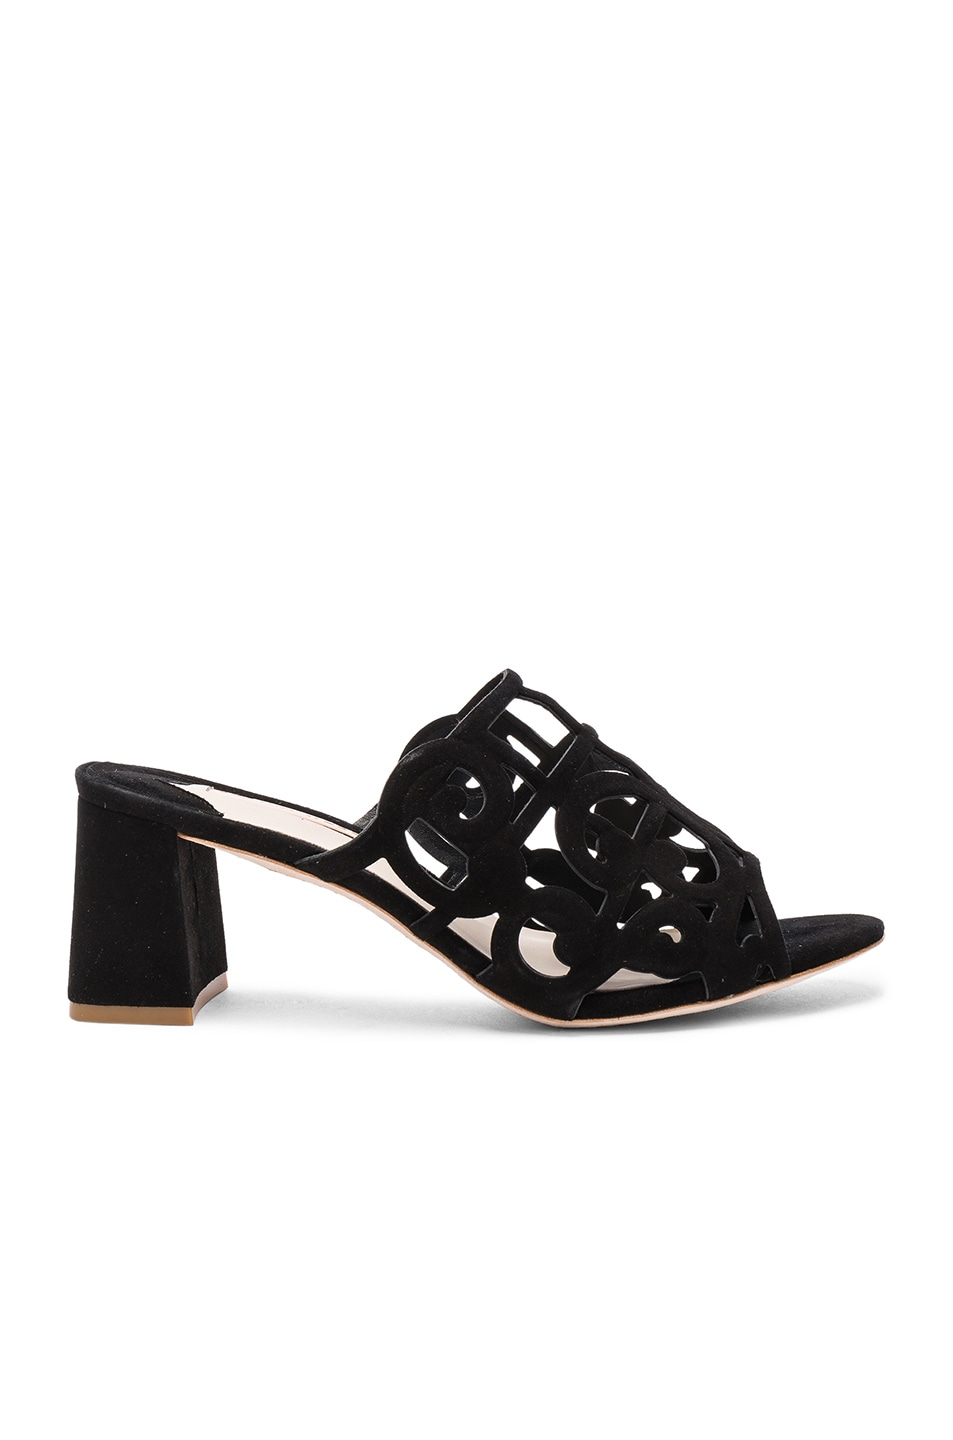 Image 1 of Sophia Webster Suede Birdie Mules in Black